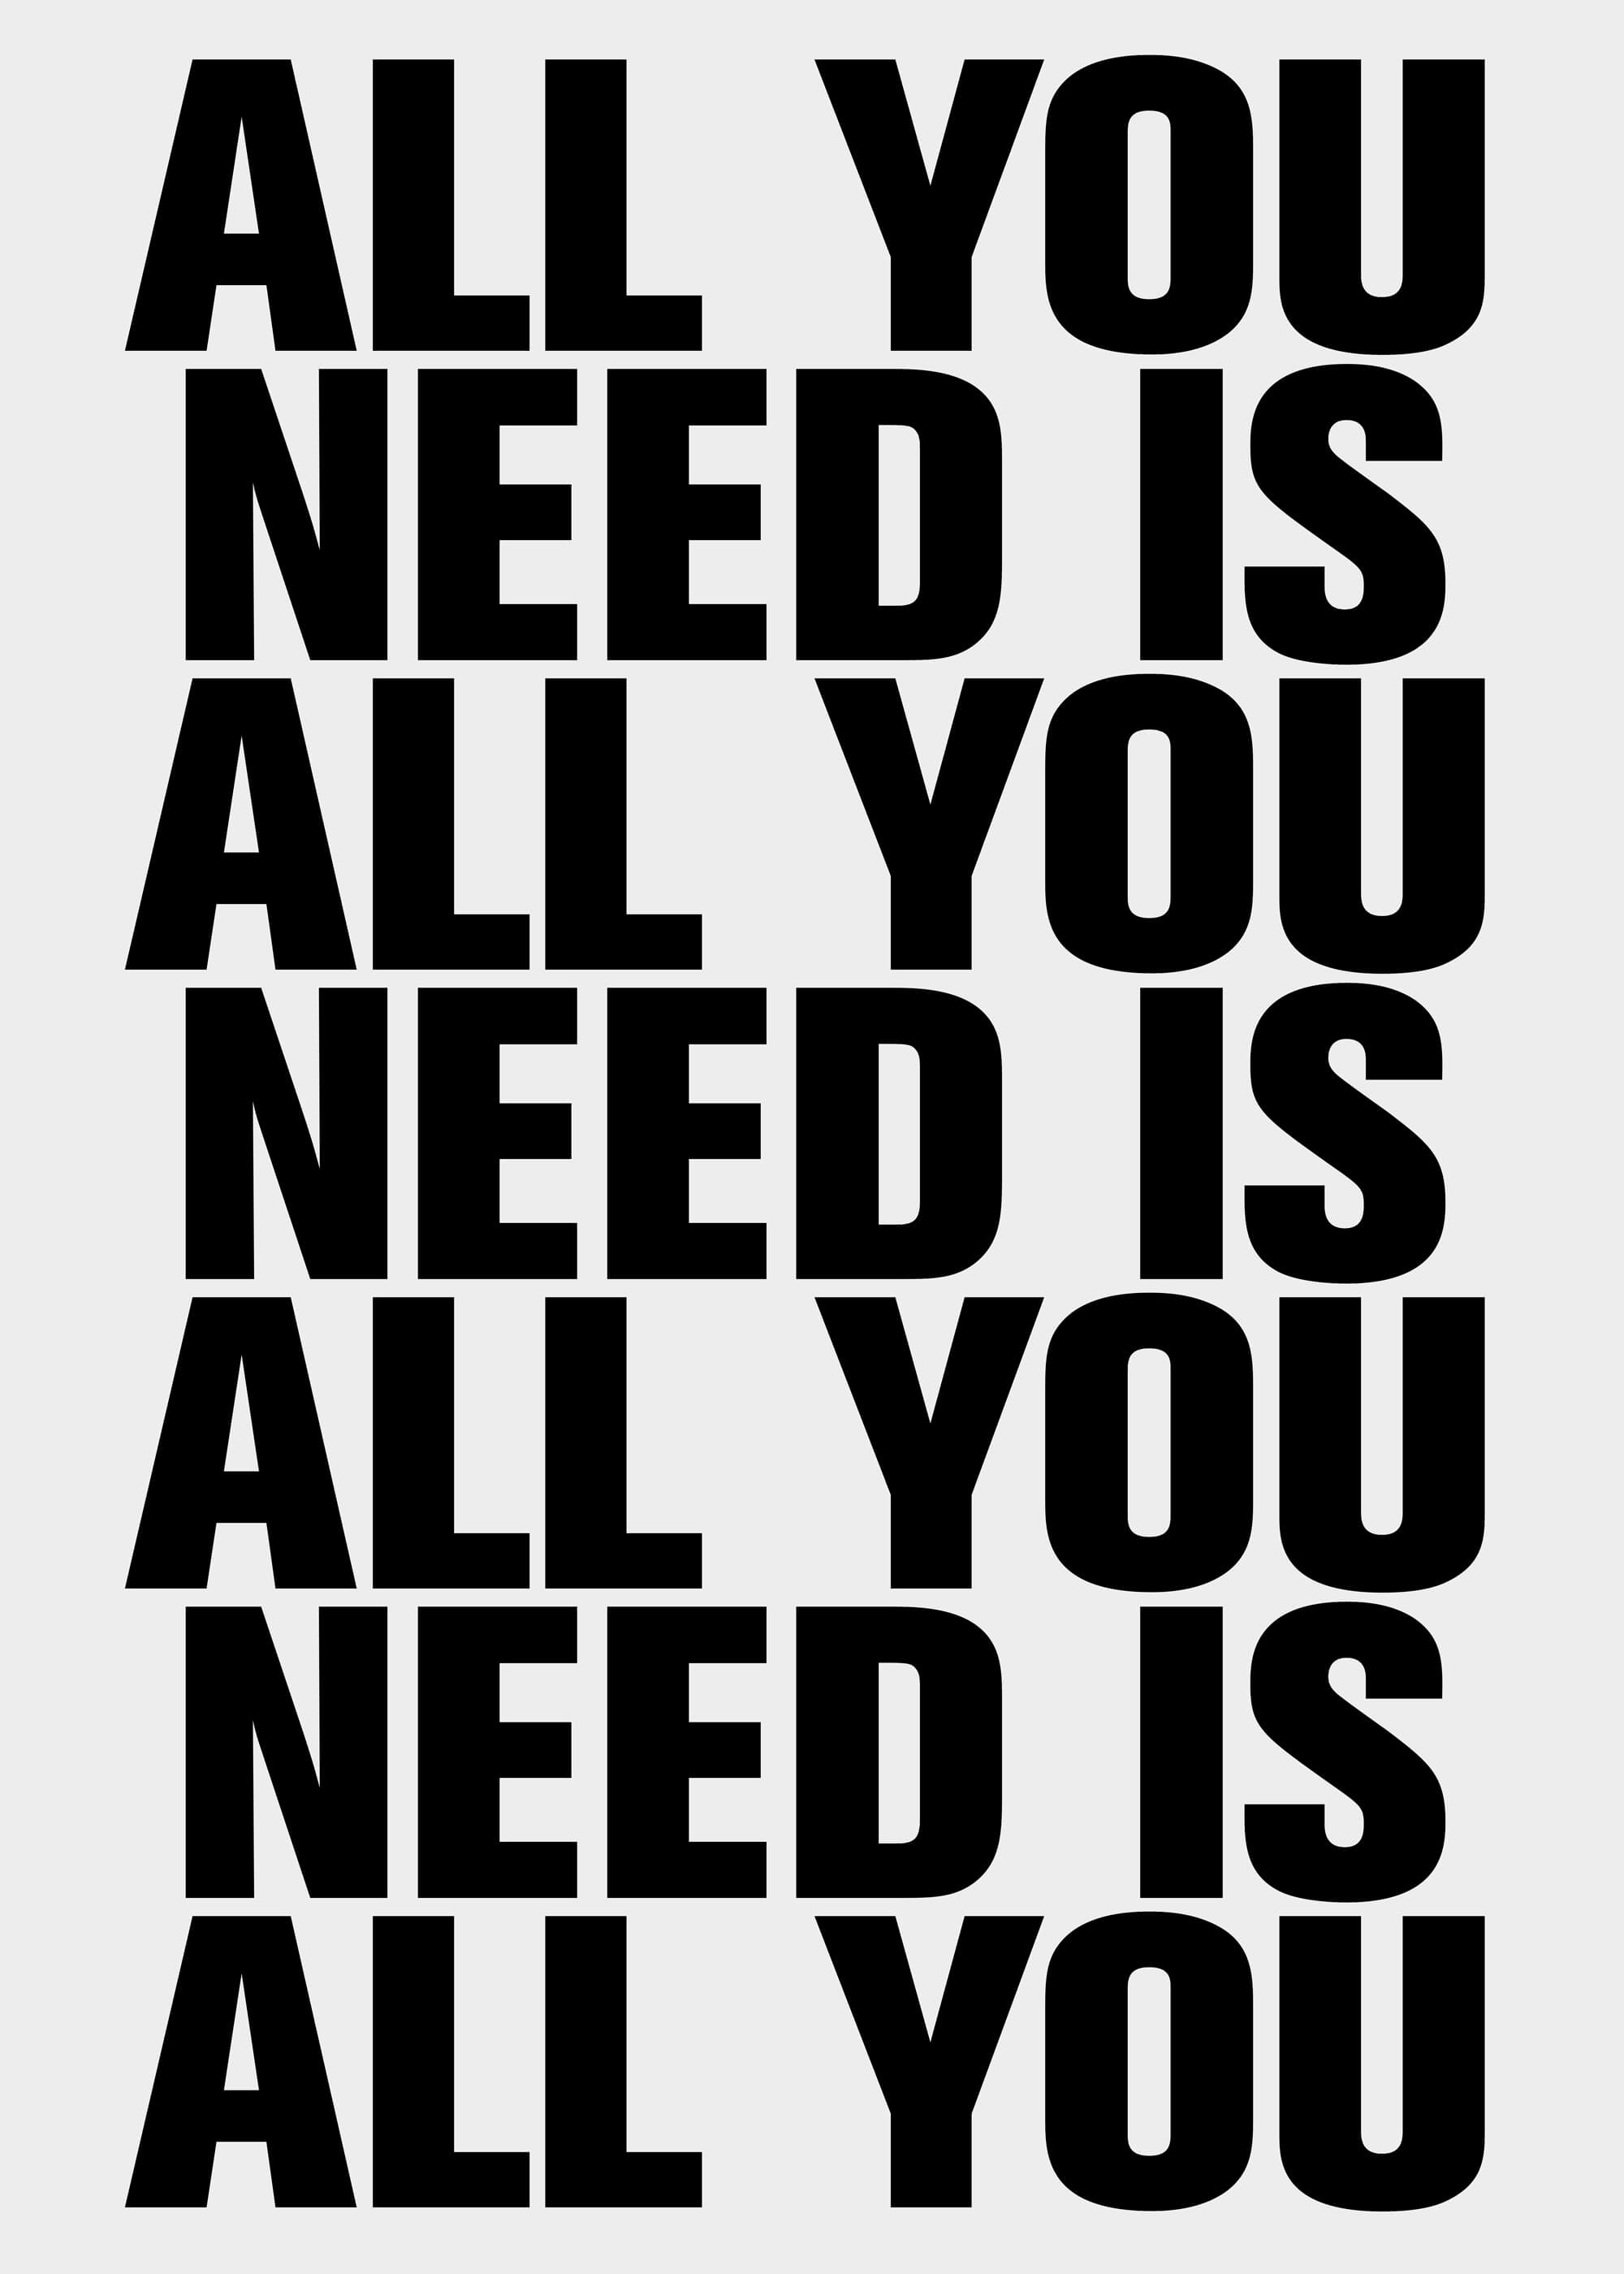 Daniel_Angermann_Allyouneed All you need is all you